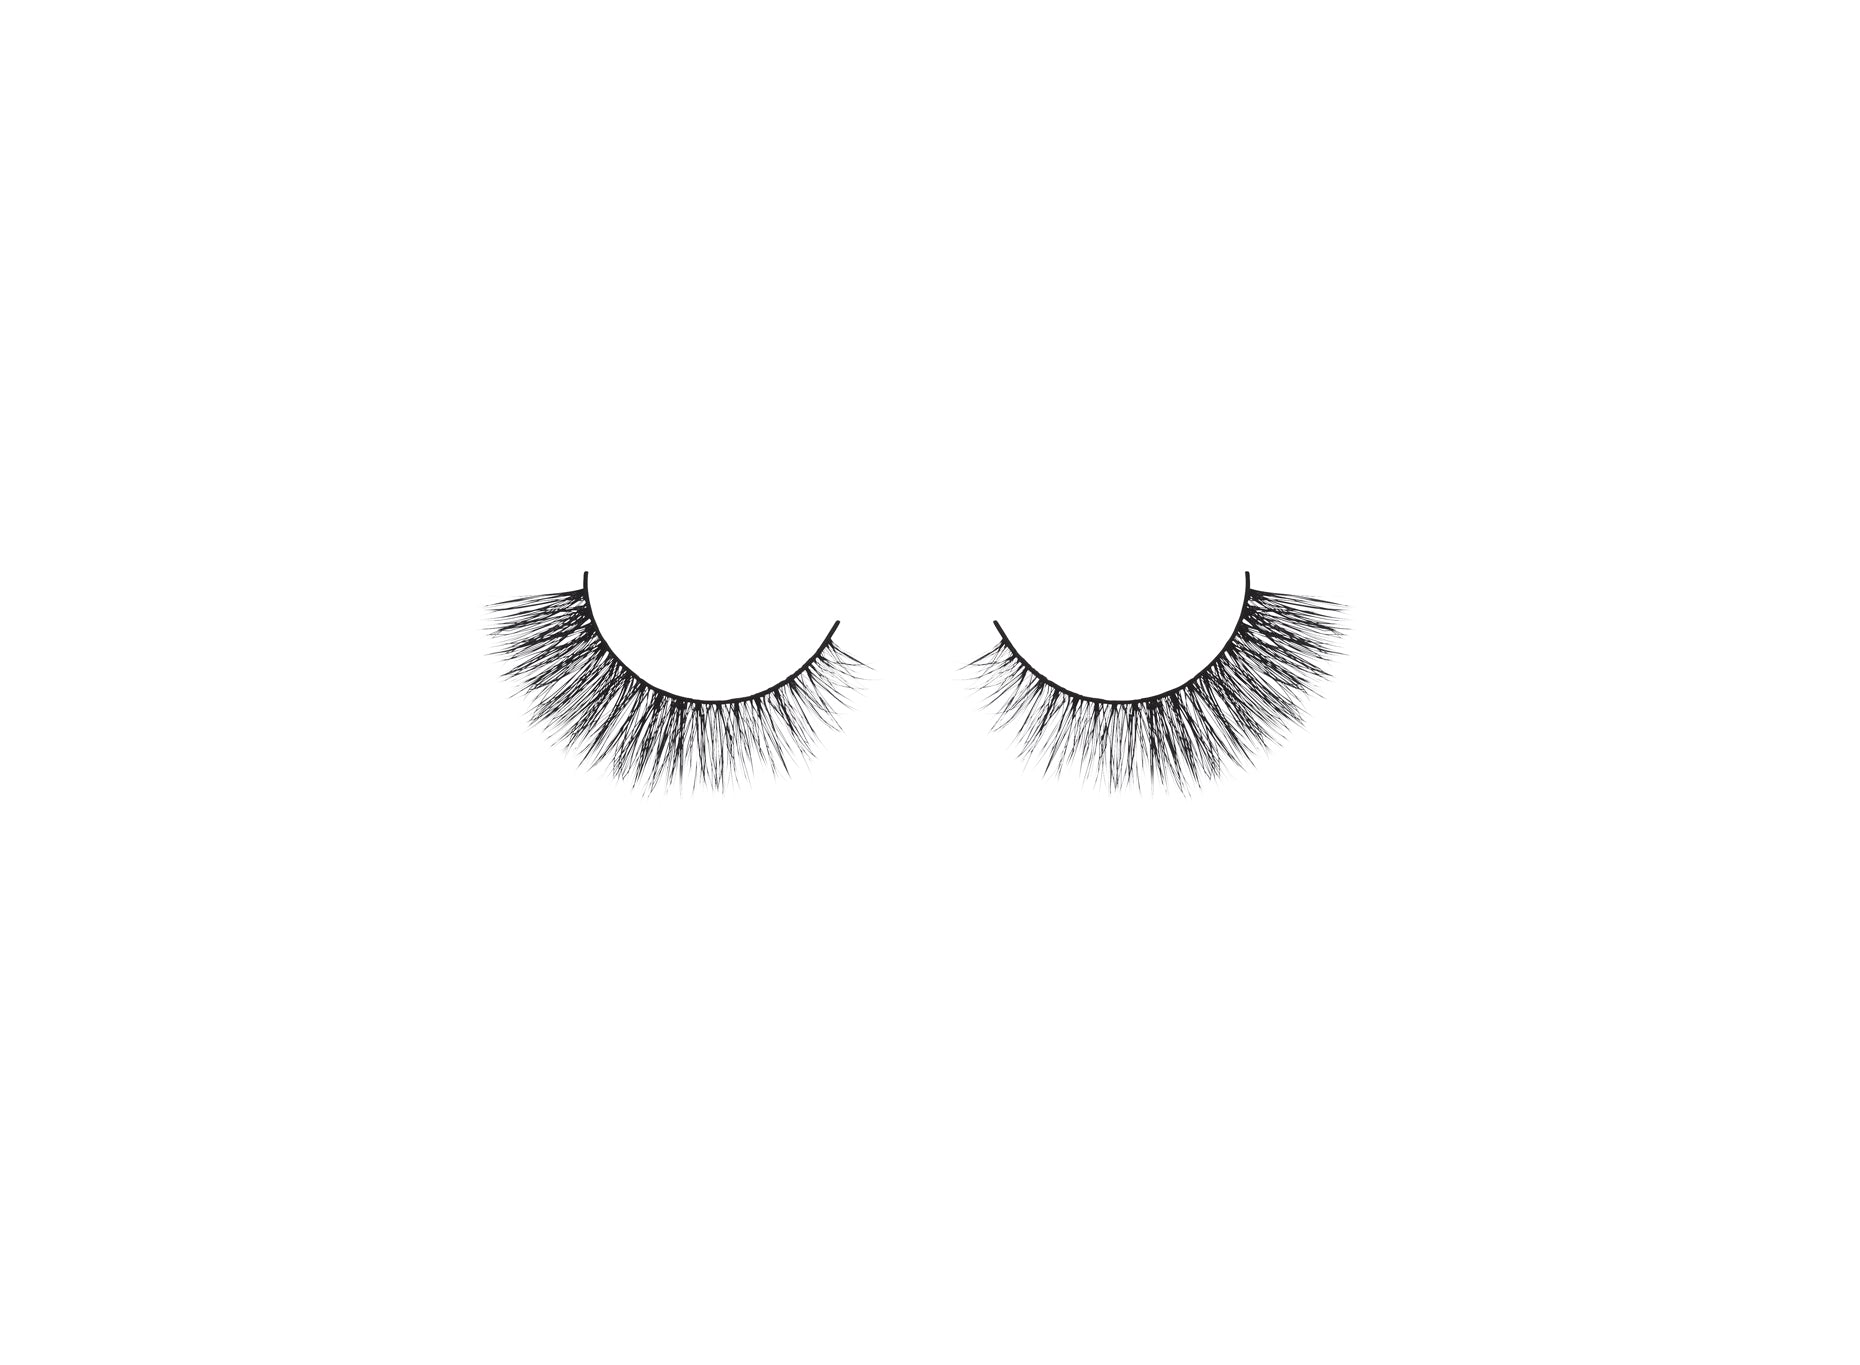 thumbnail - classic lashes from lash star beauty